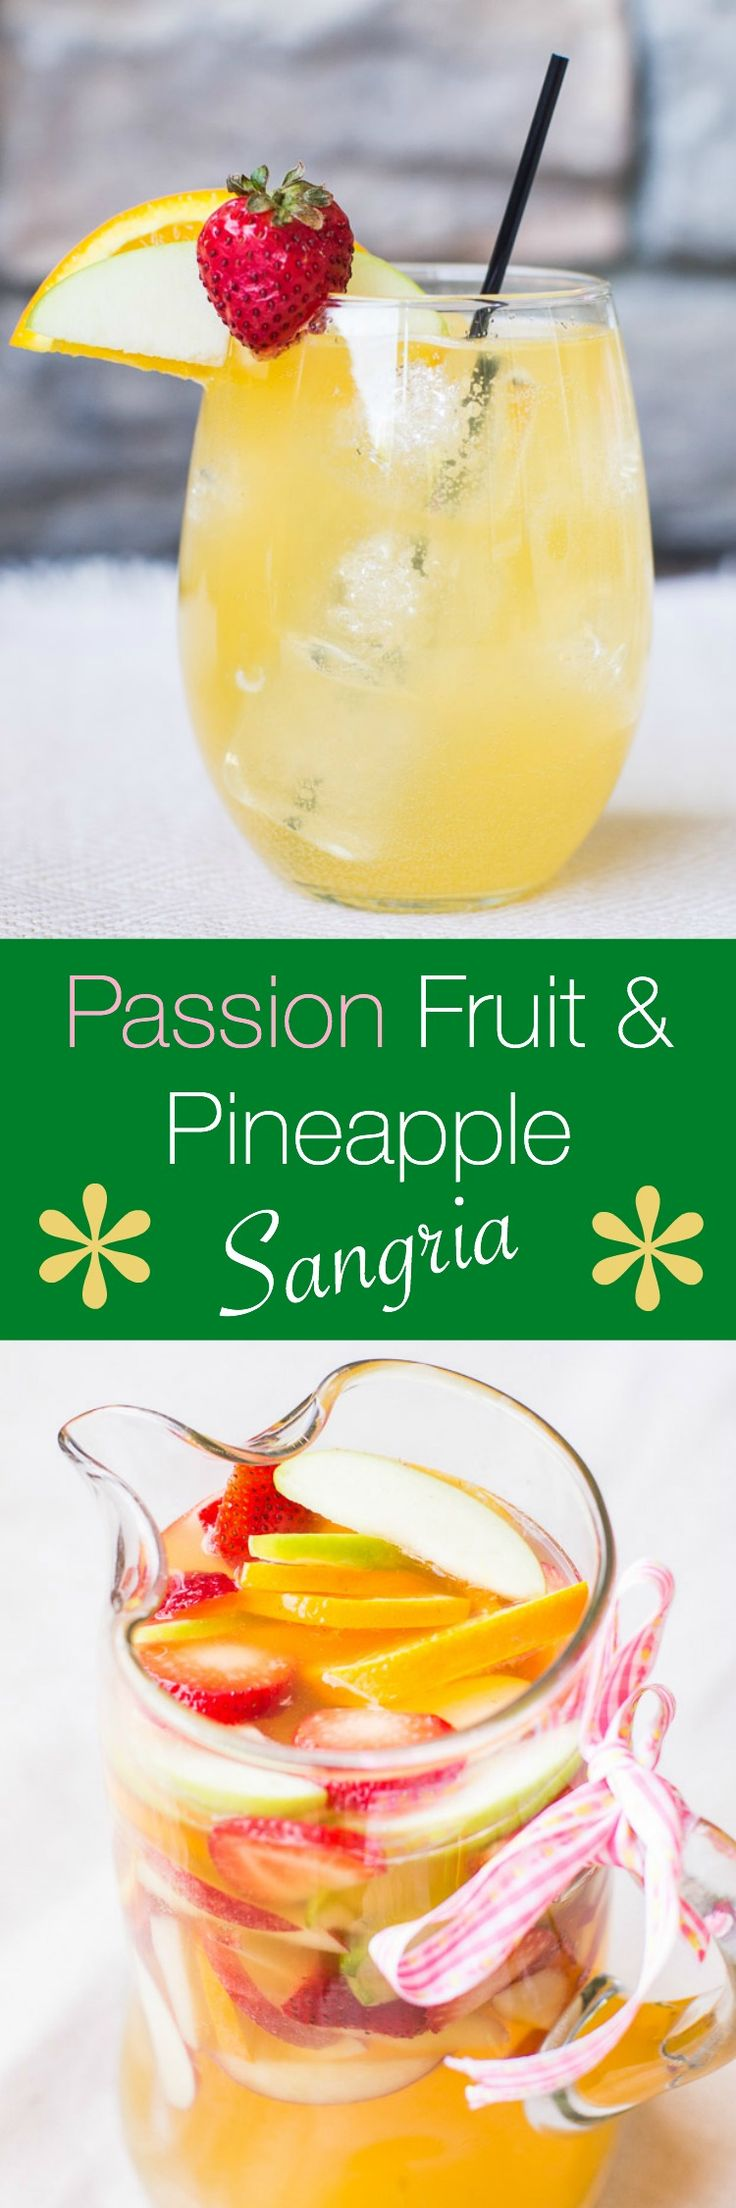 Msg 4 21+: Looking for a fresh signature sip this summer? Passion Fruit and Pineapple Sangria is sweet, sparkly and destined to be your new favorite beverage! #Arbormist #StartSummer #ad